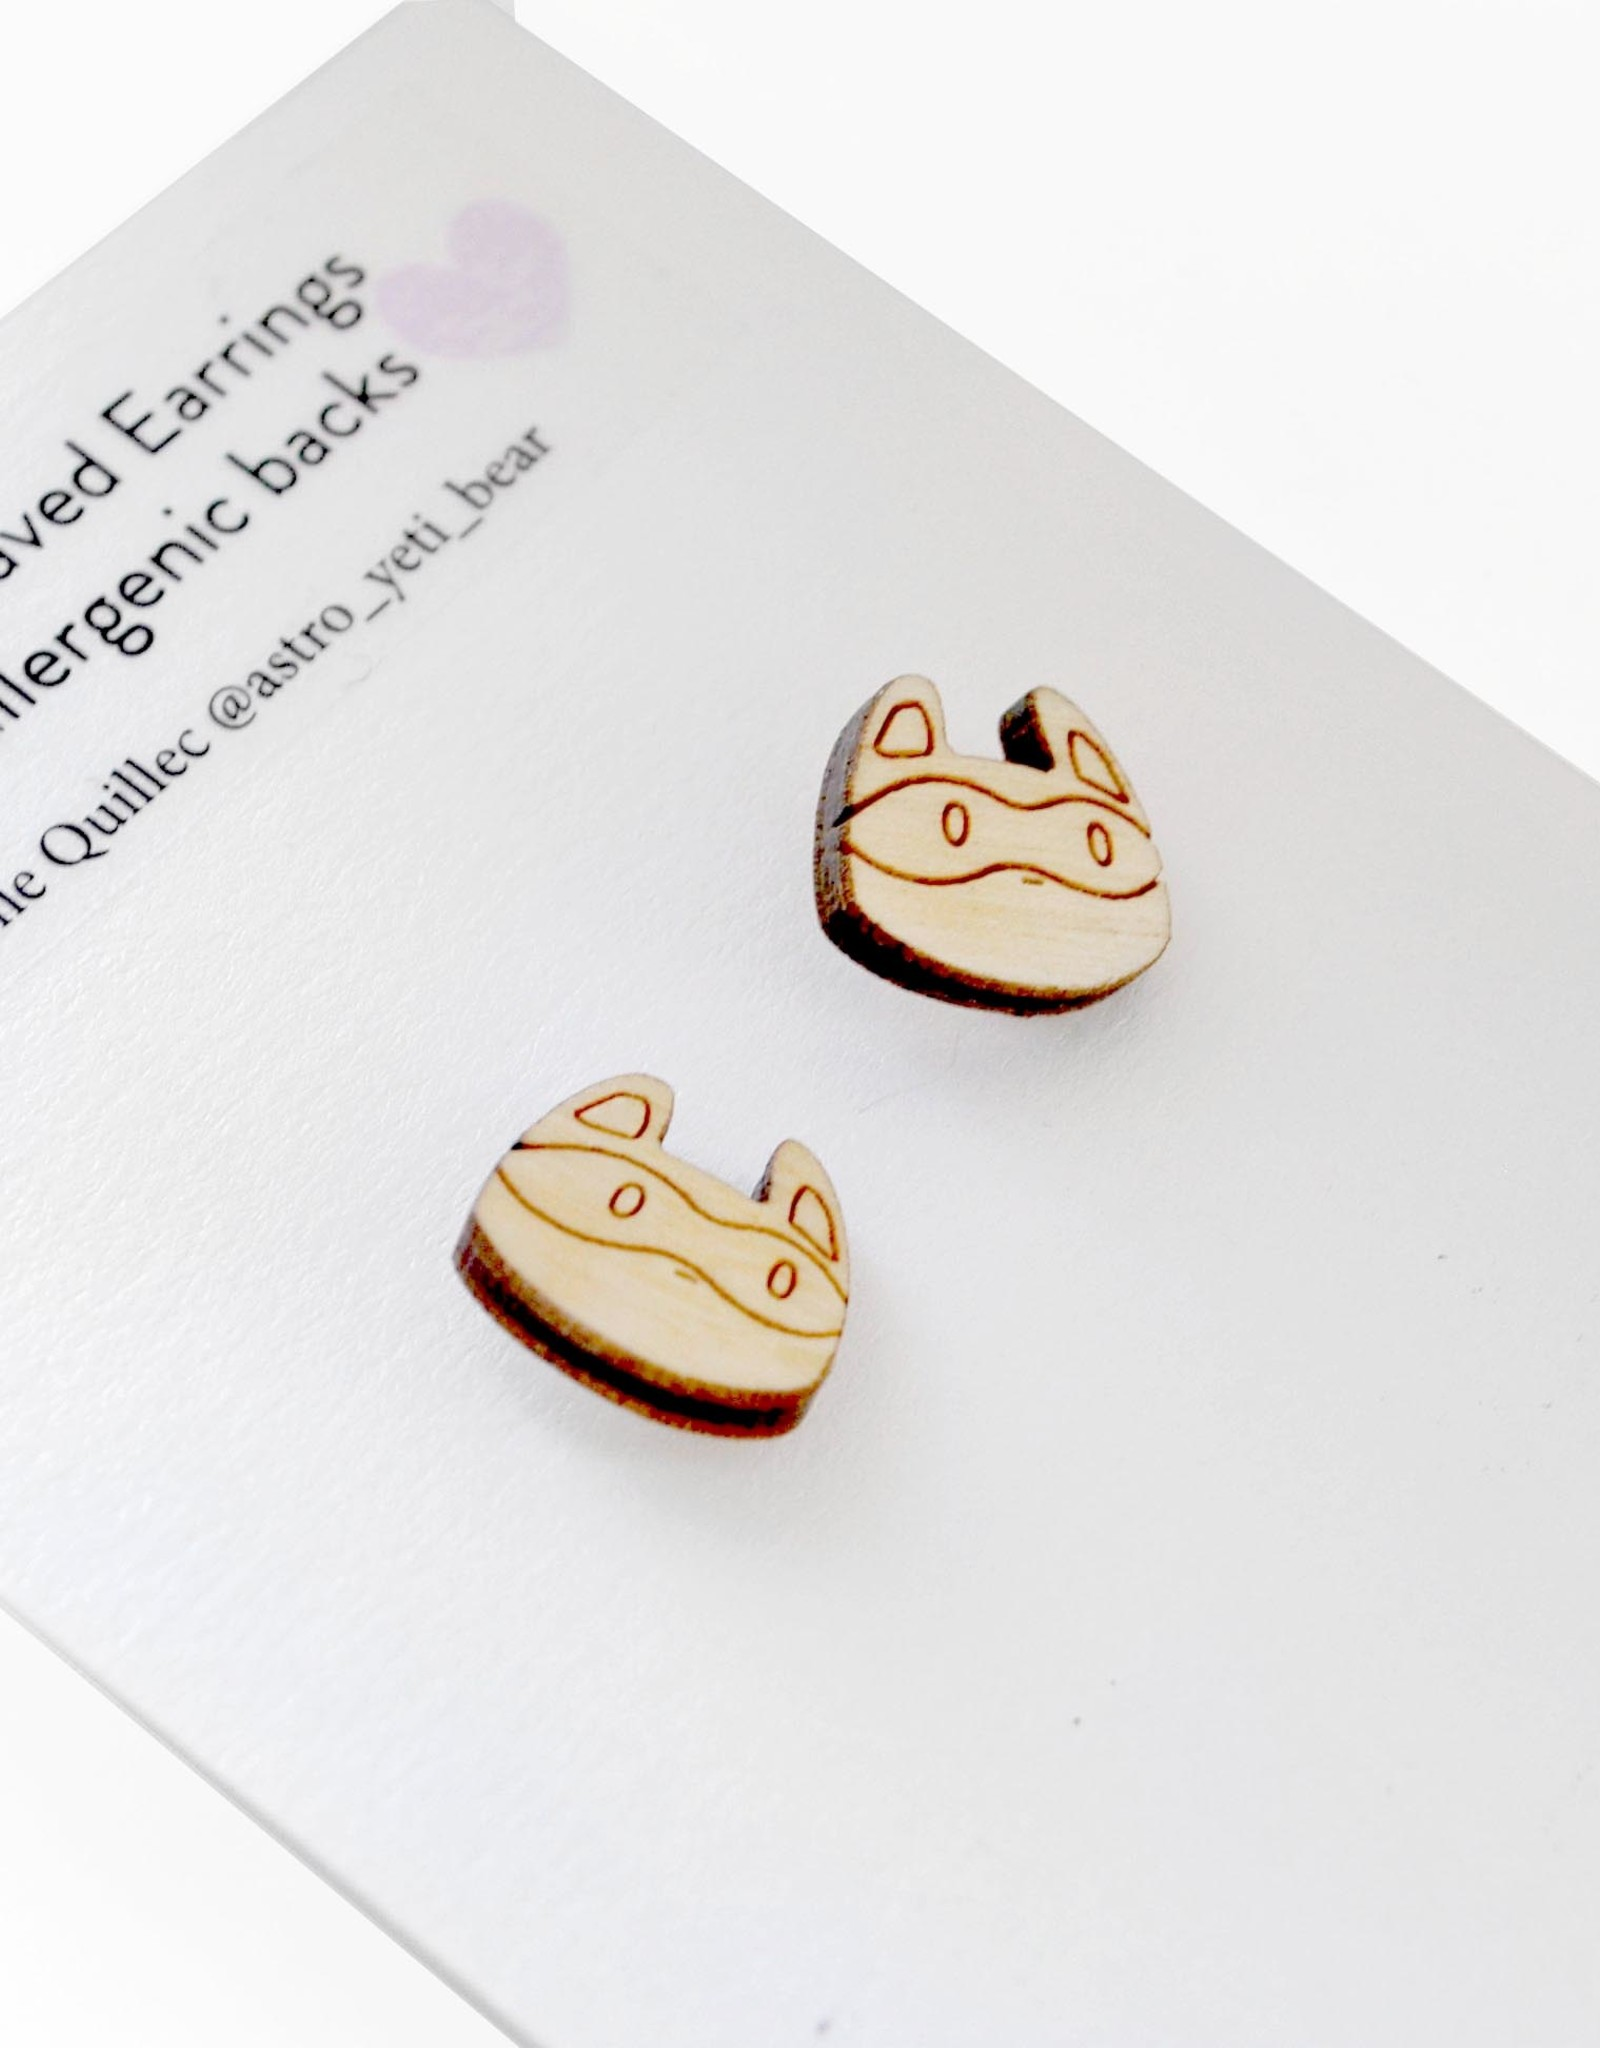 Sophie Quillec Raccoon Earrings by Sophie Quillec